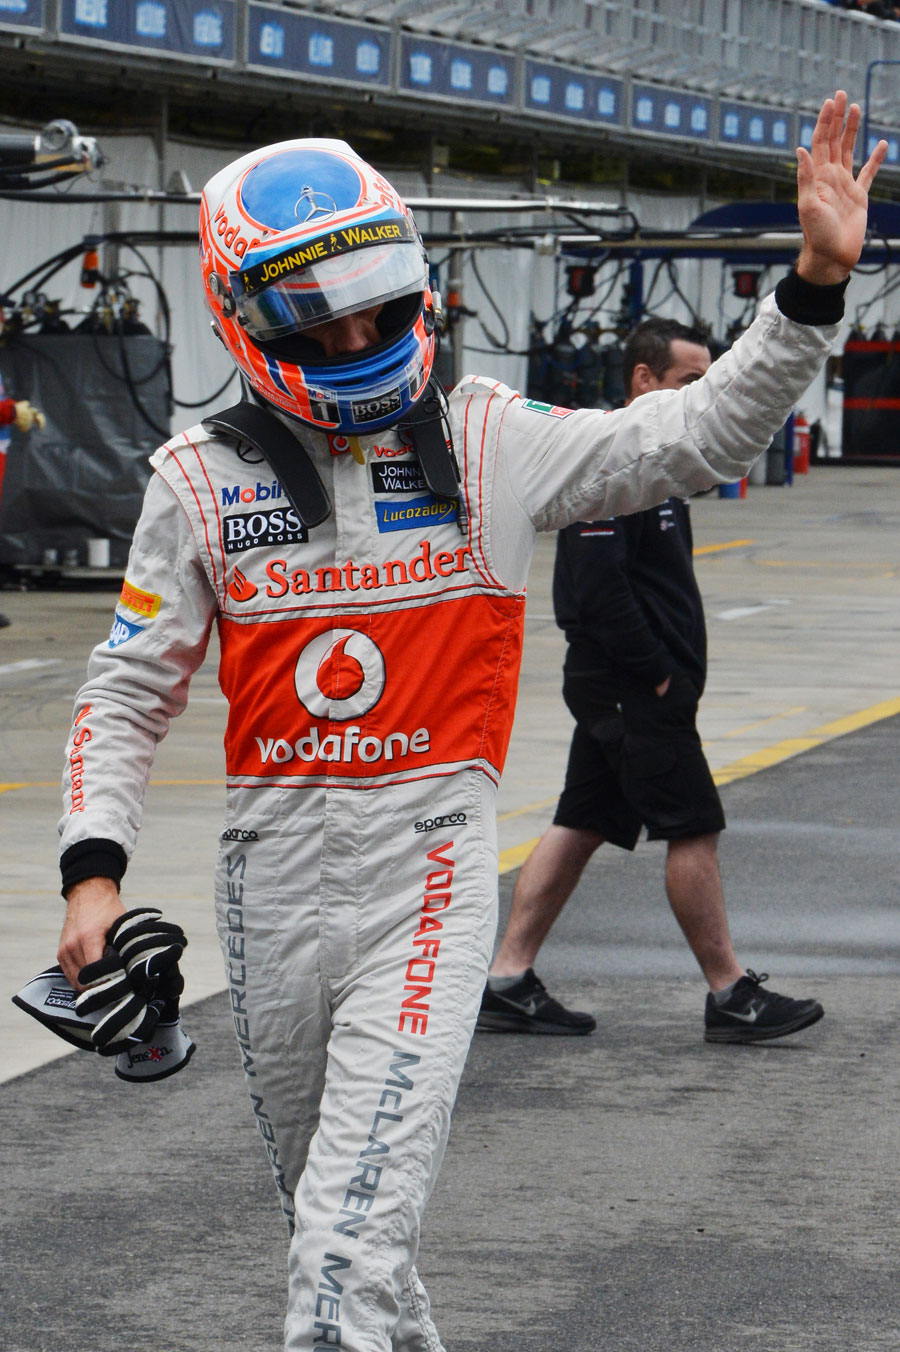 Jenson Button waves to the crowd after qualifying